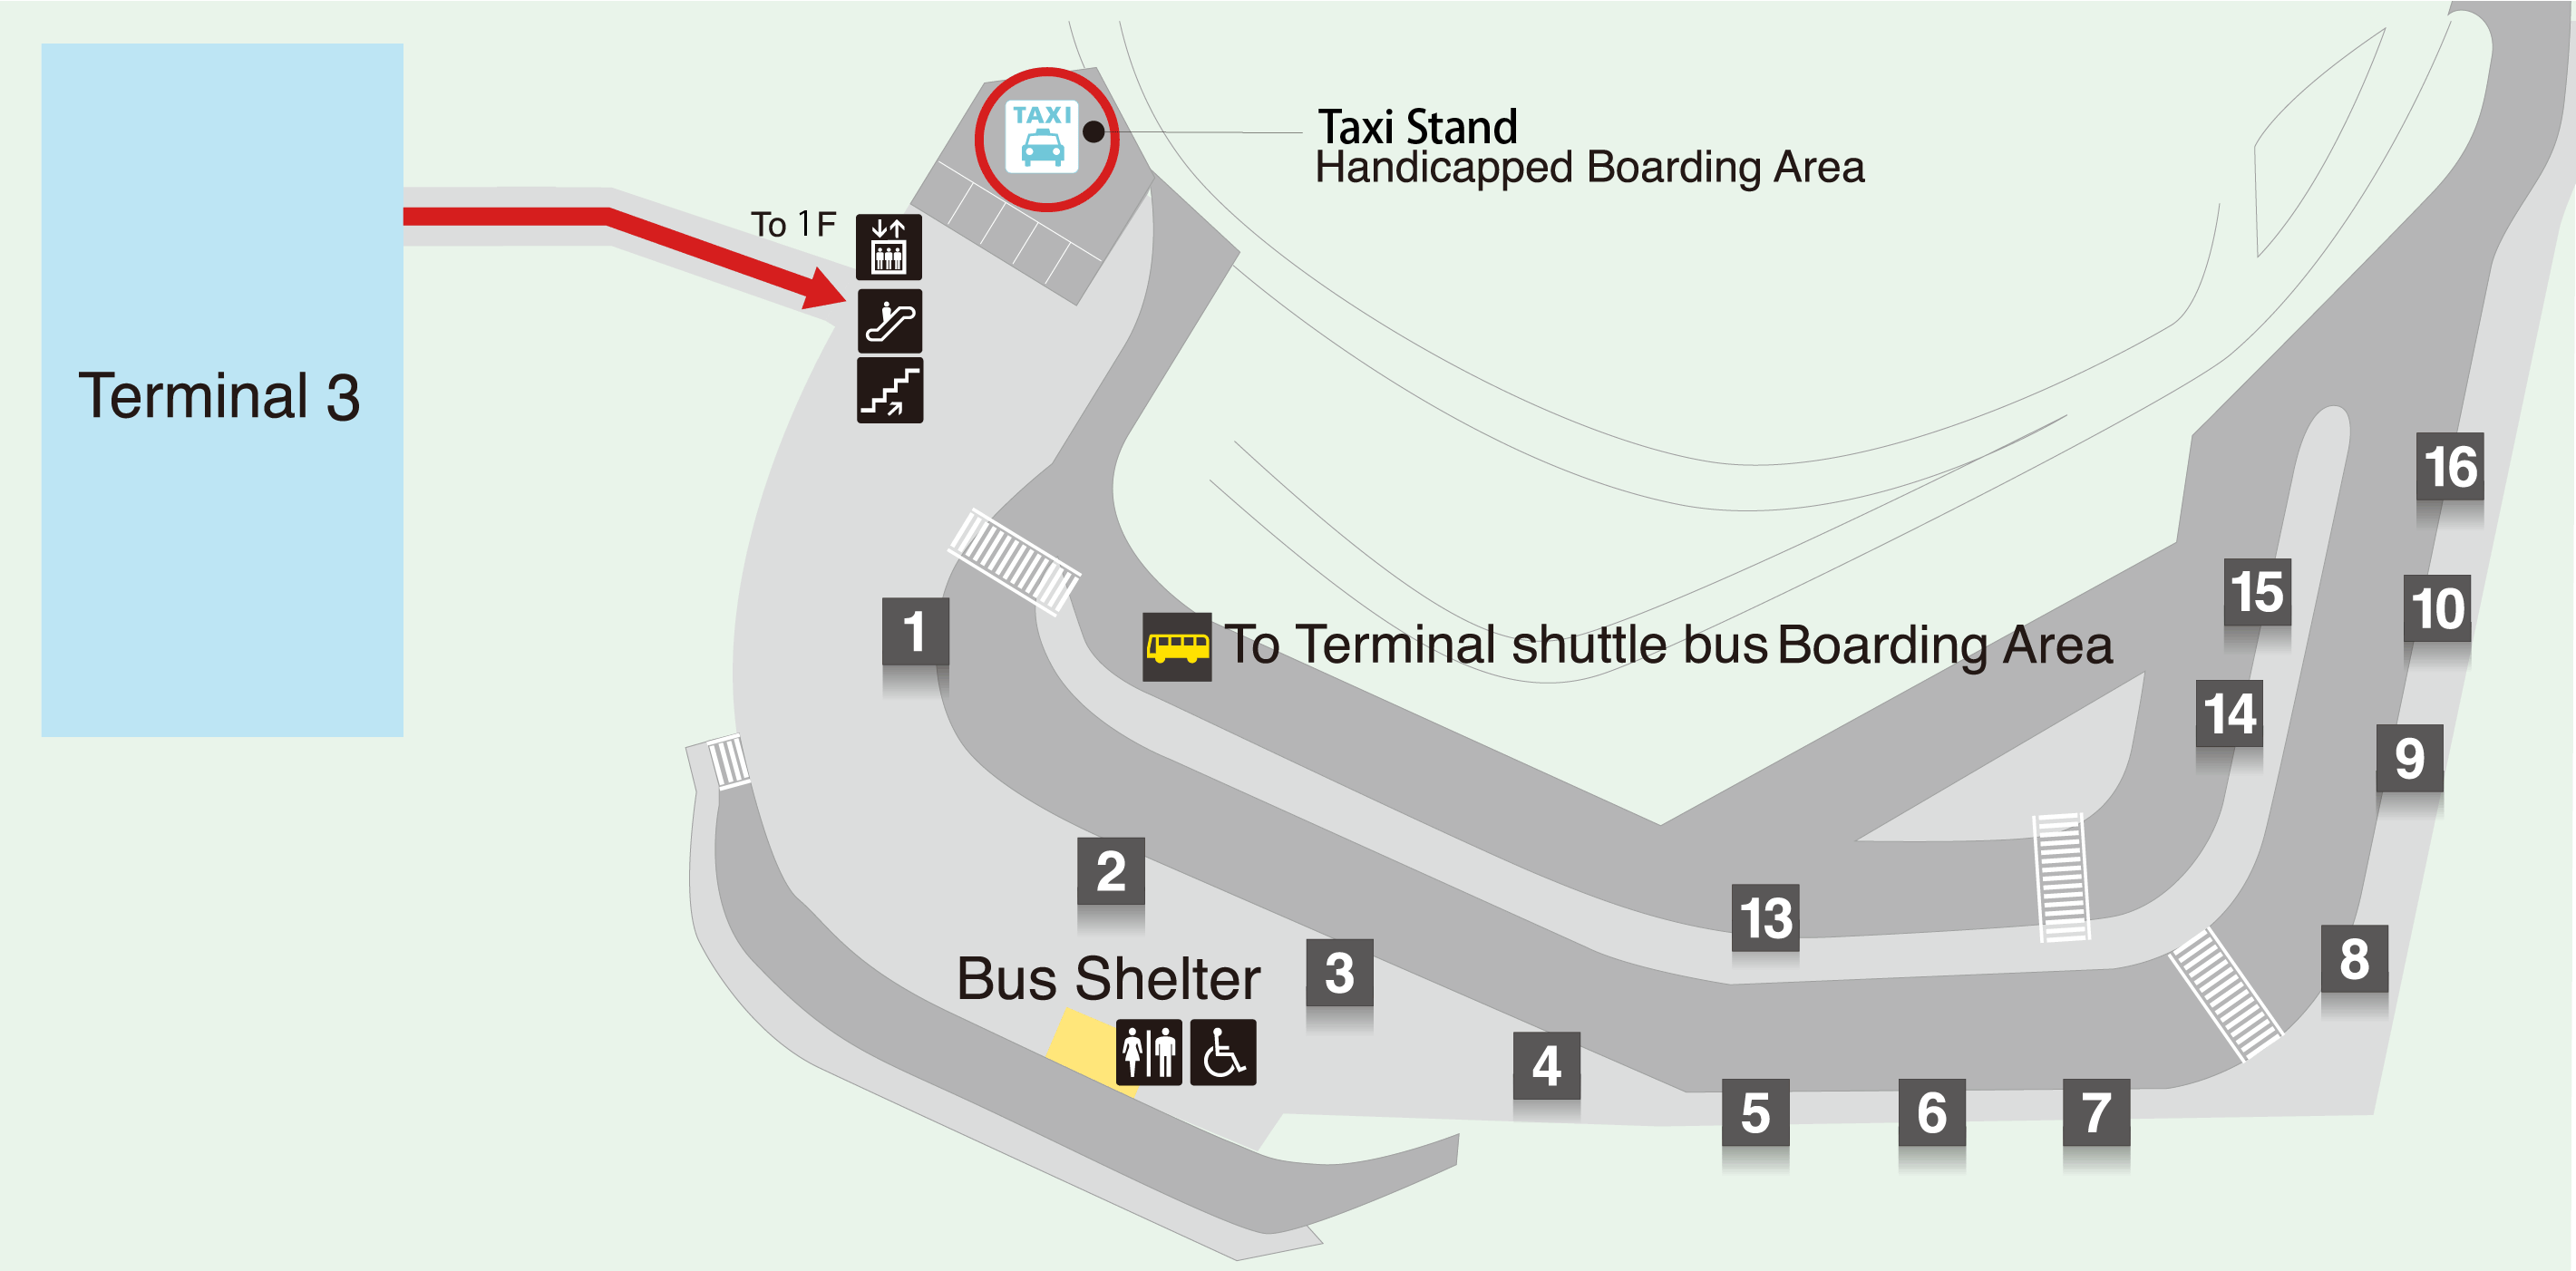 Terminal 3 Taxi Stand